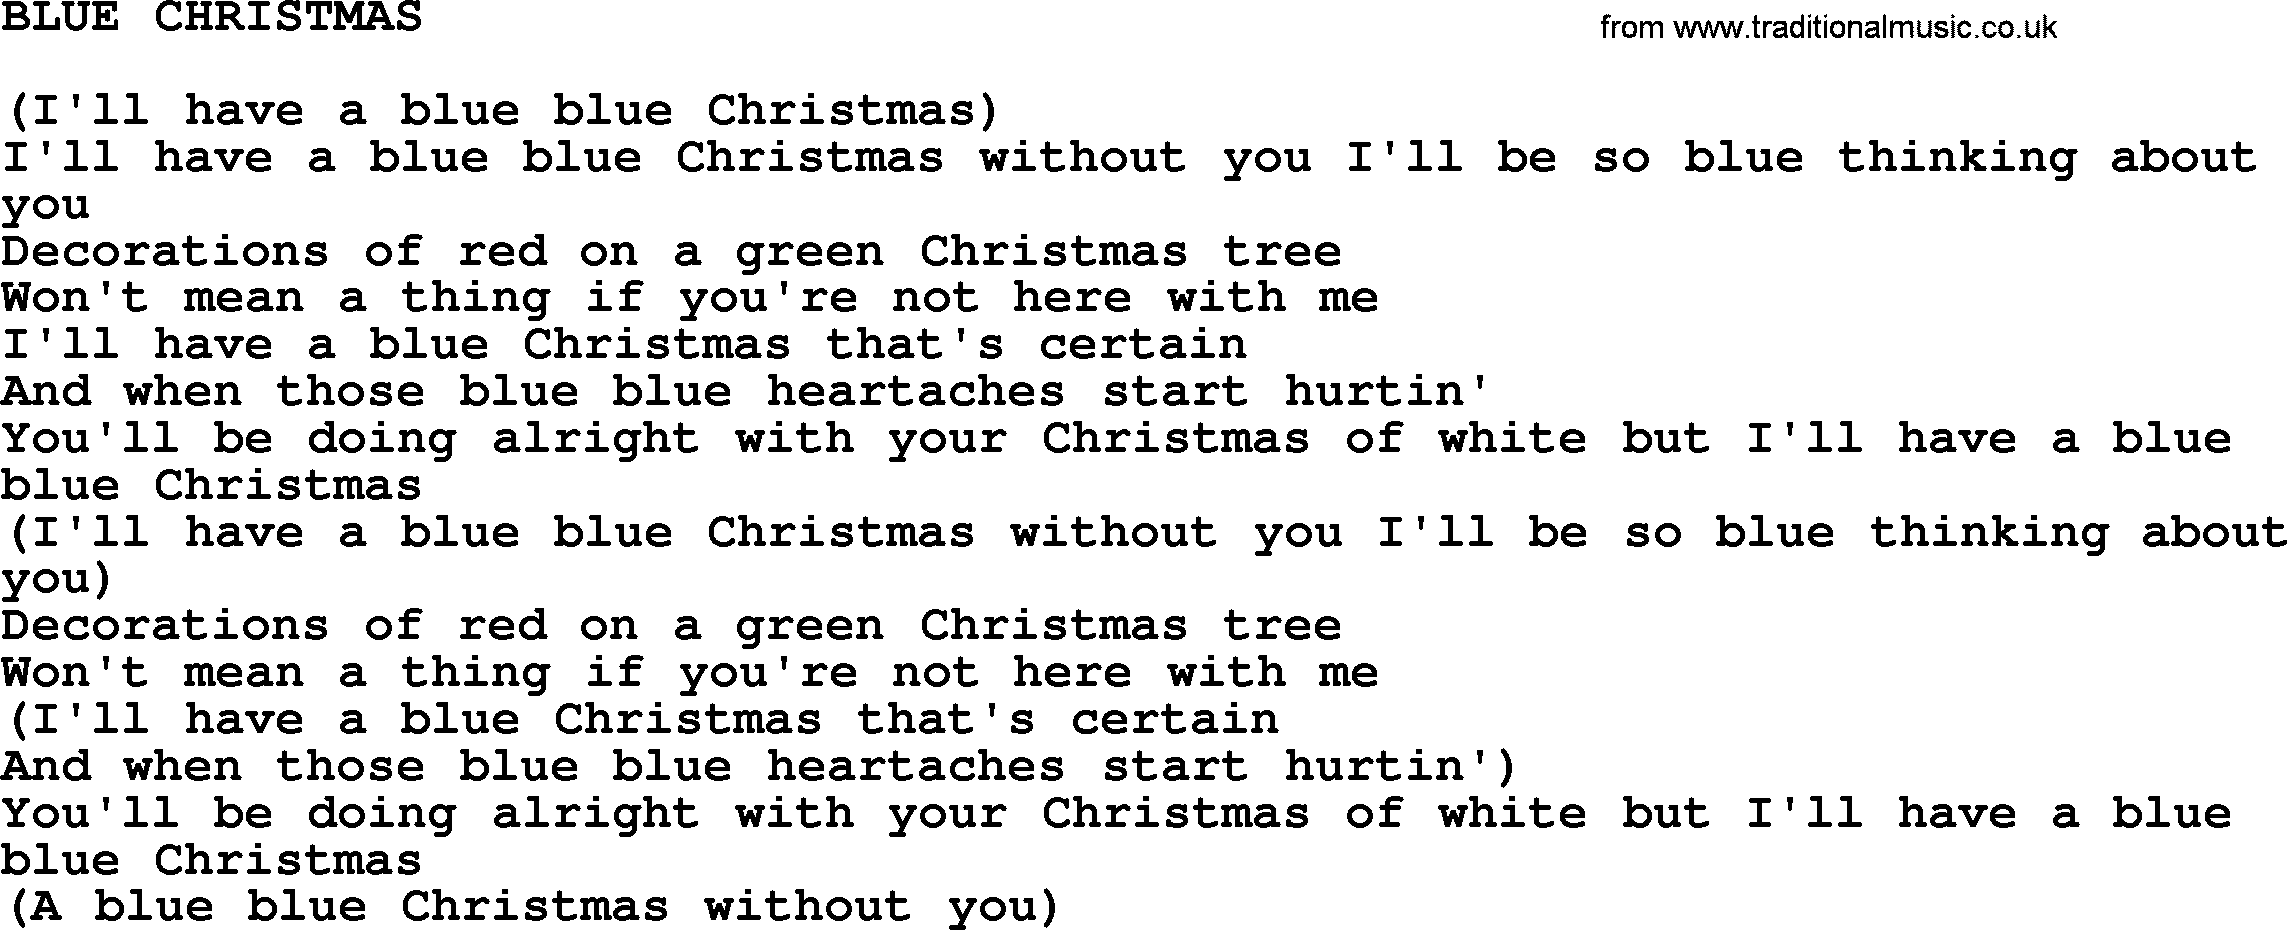 Johnny Cash song: Blue Christmas, lyrics